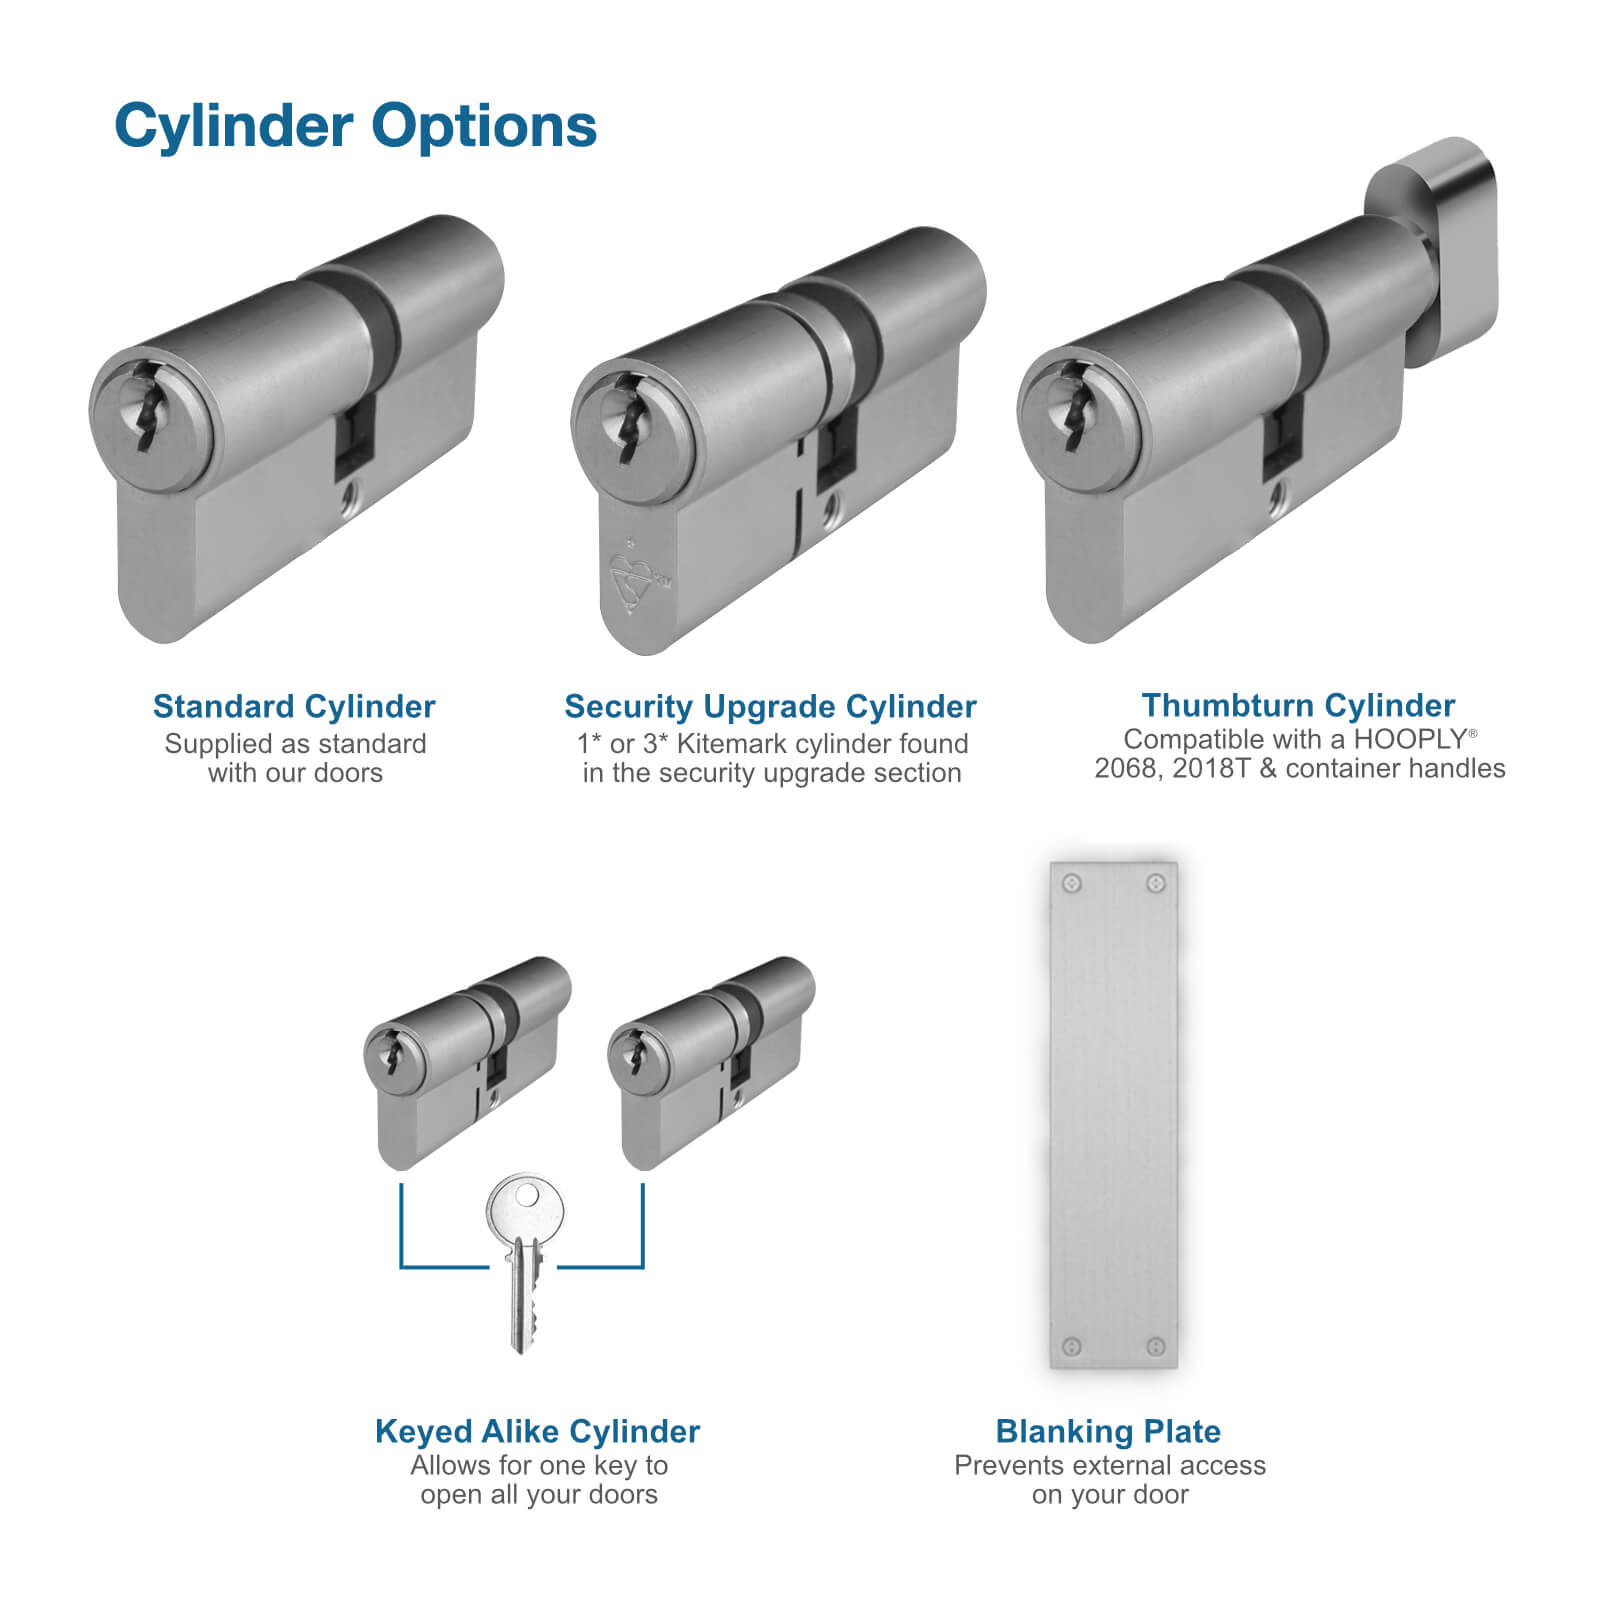 Cylinder options, a blanking plate and details of keyed alike cylinders